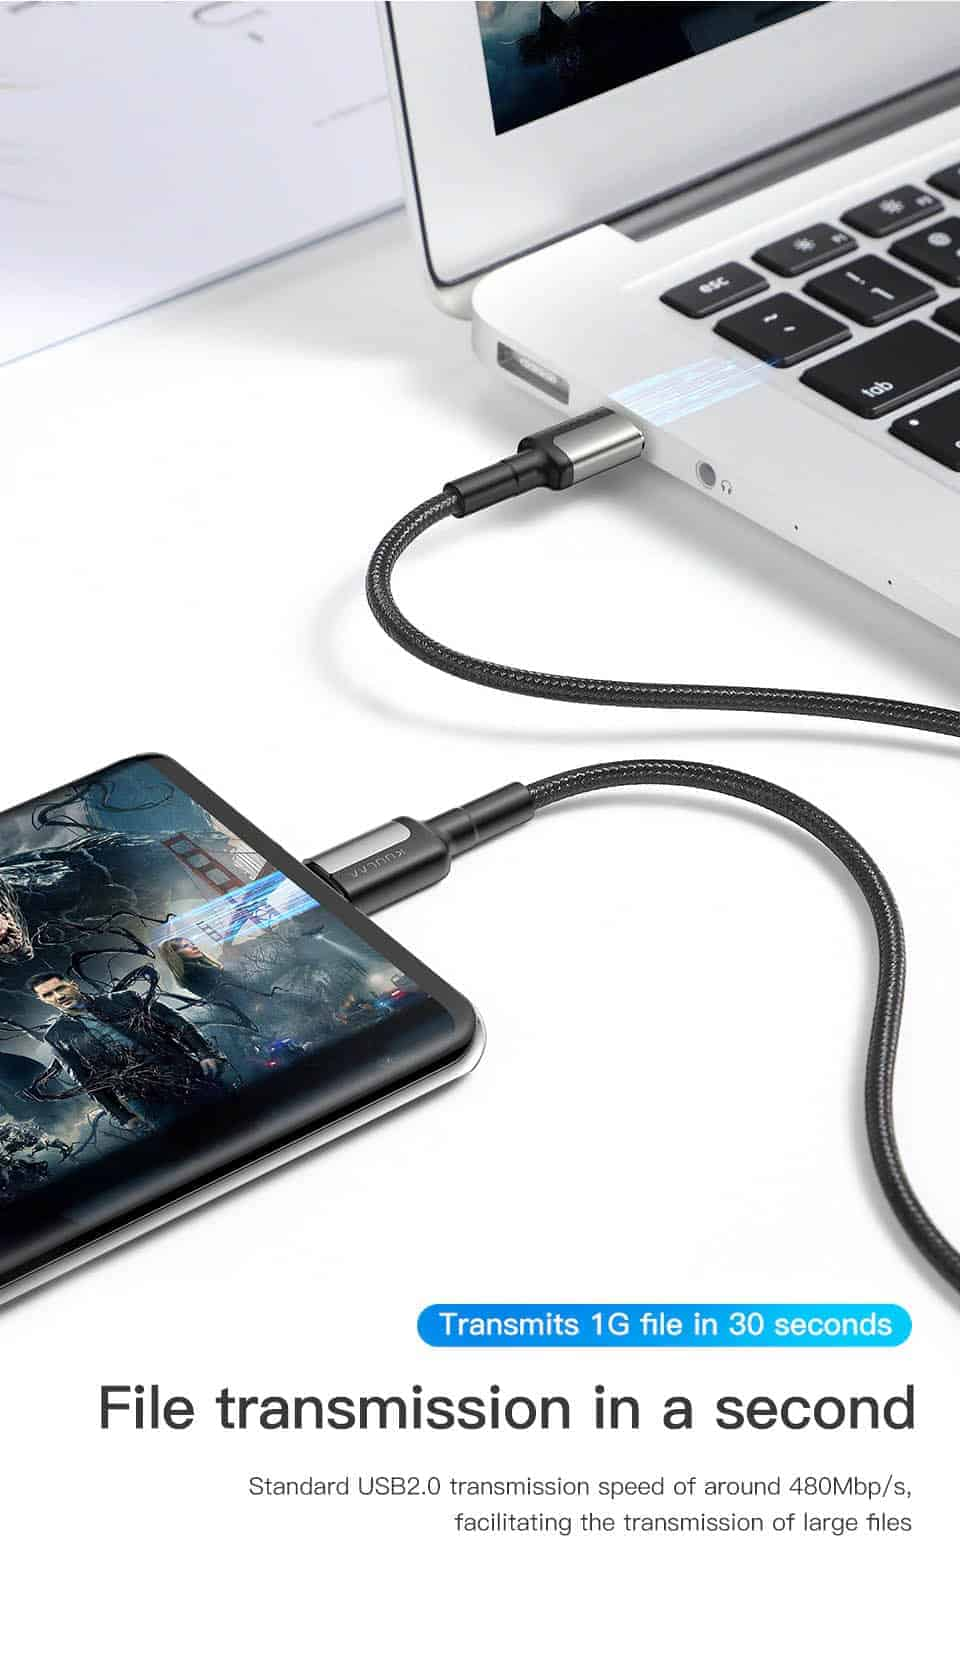 KUULAA USB Type C to USB Type C Cable File transmission in a seconed